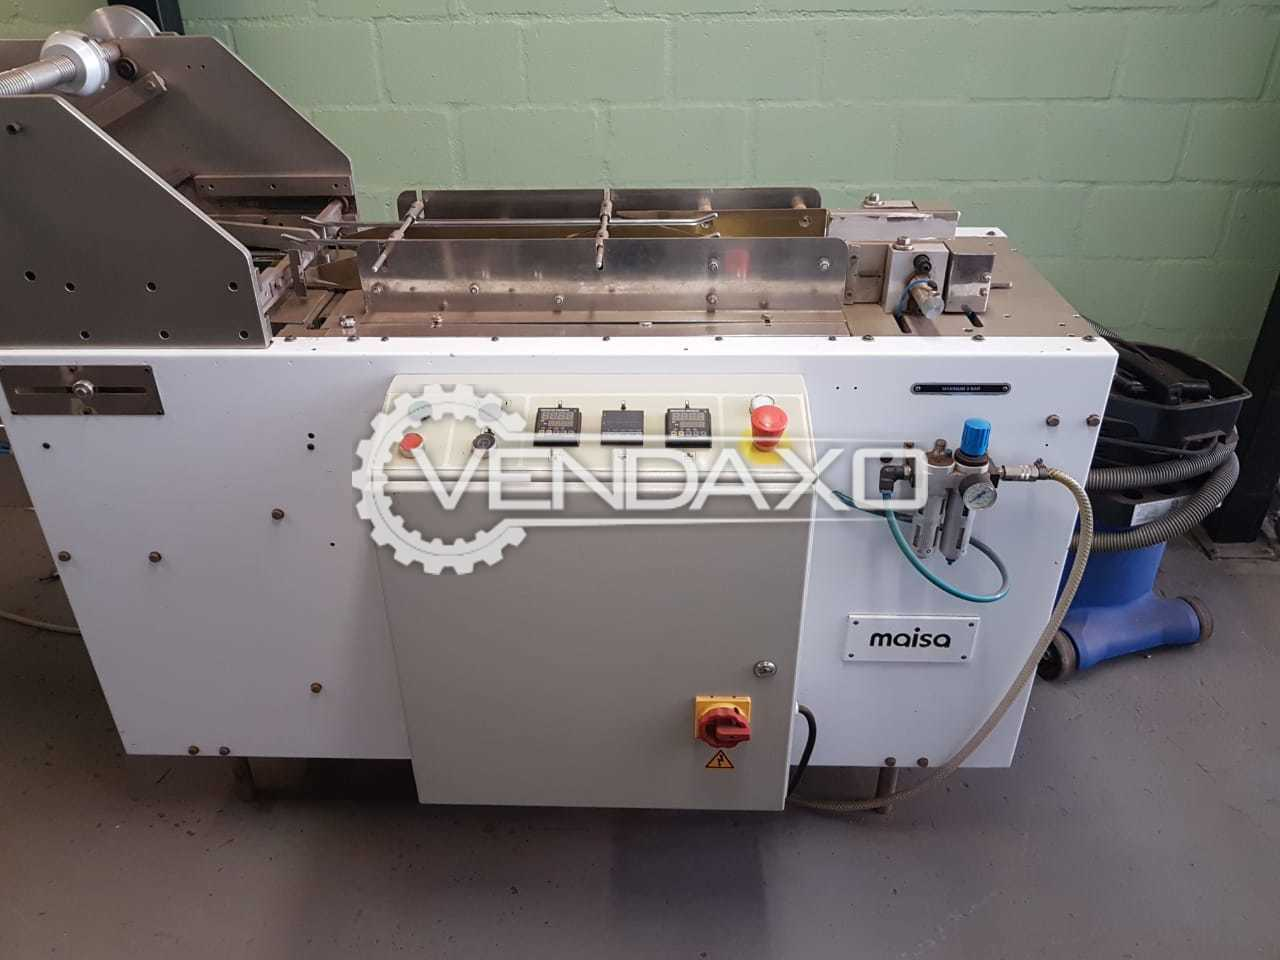 Maisa RX20 Overwrapper